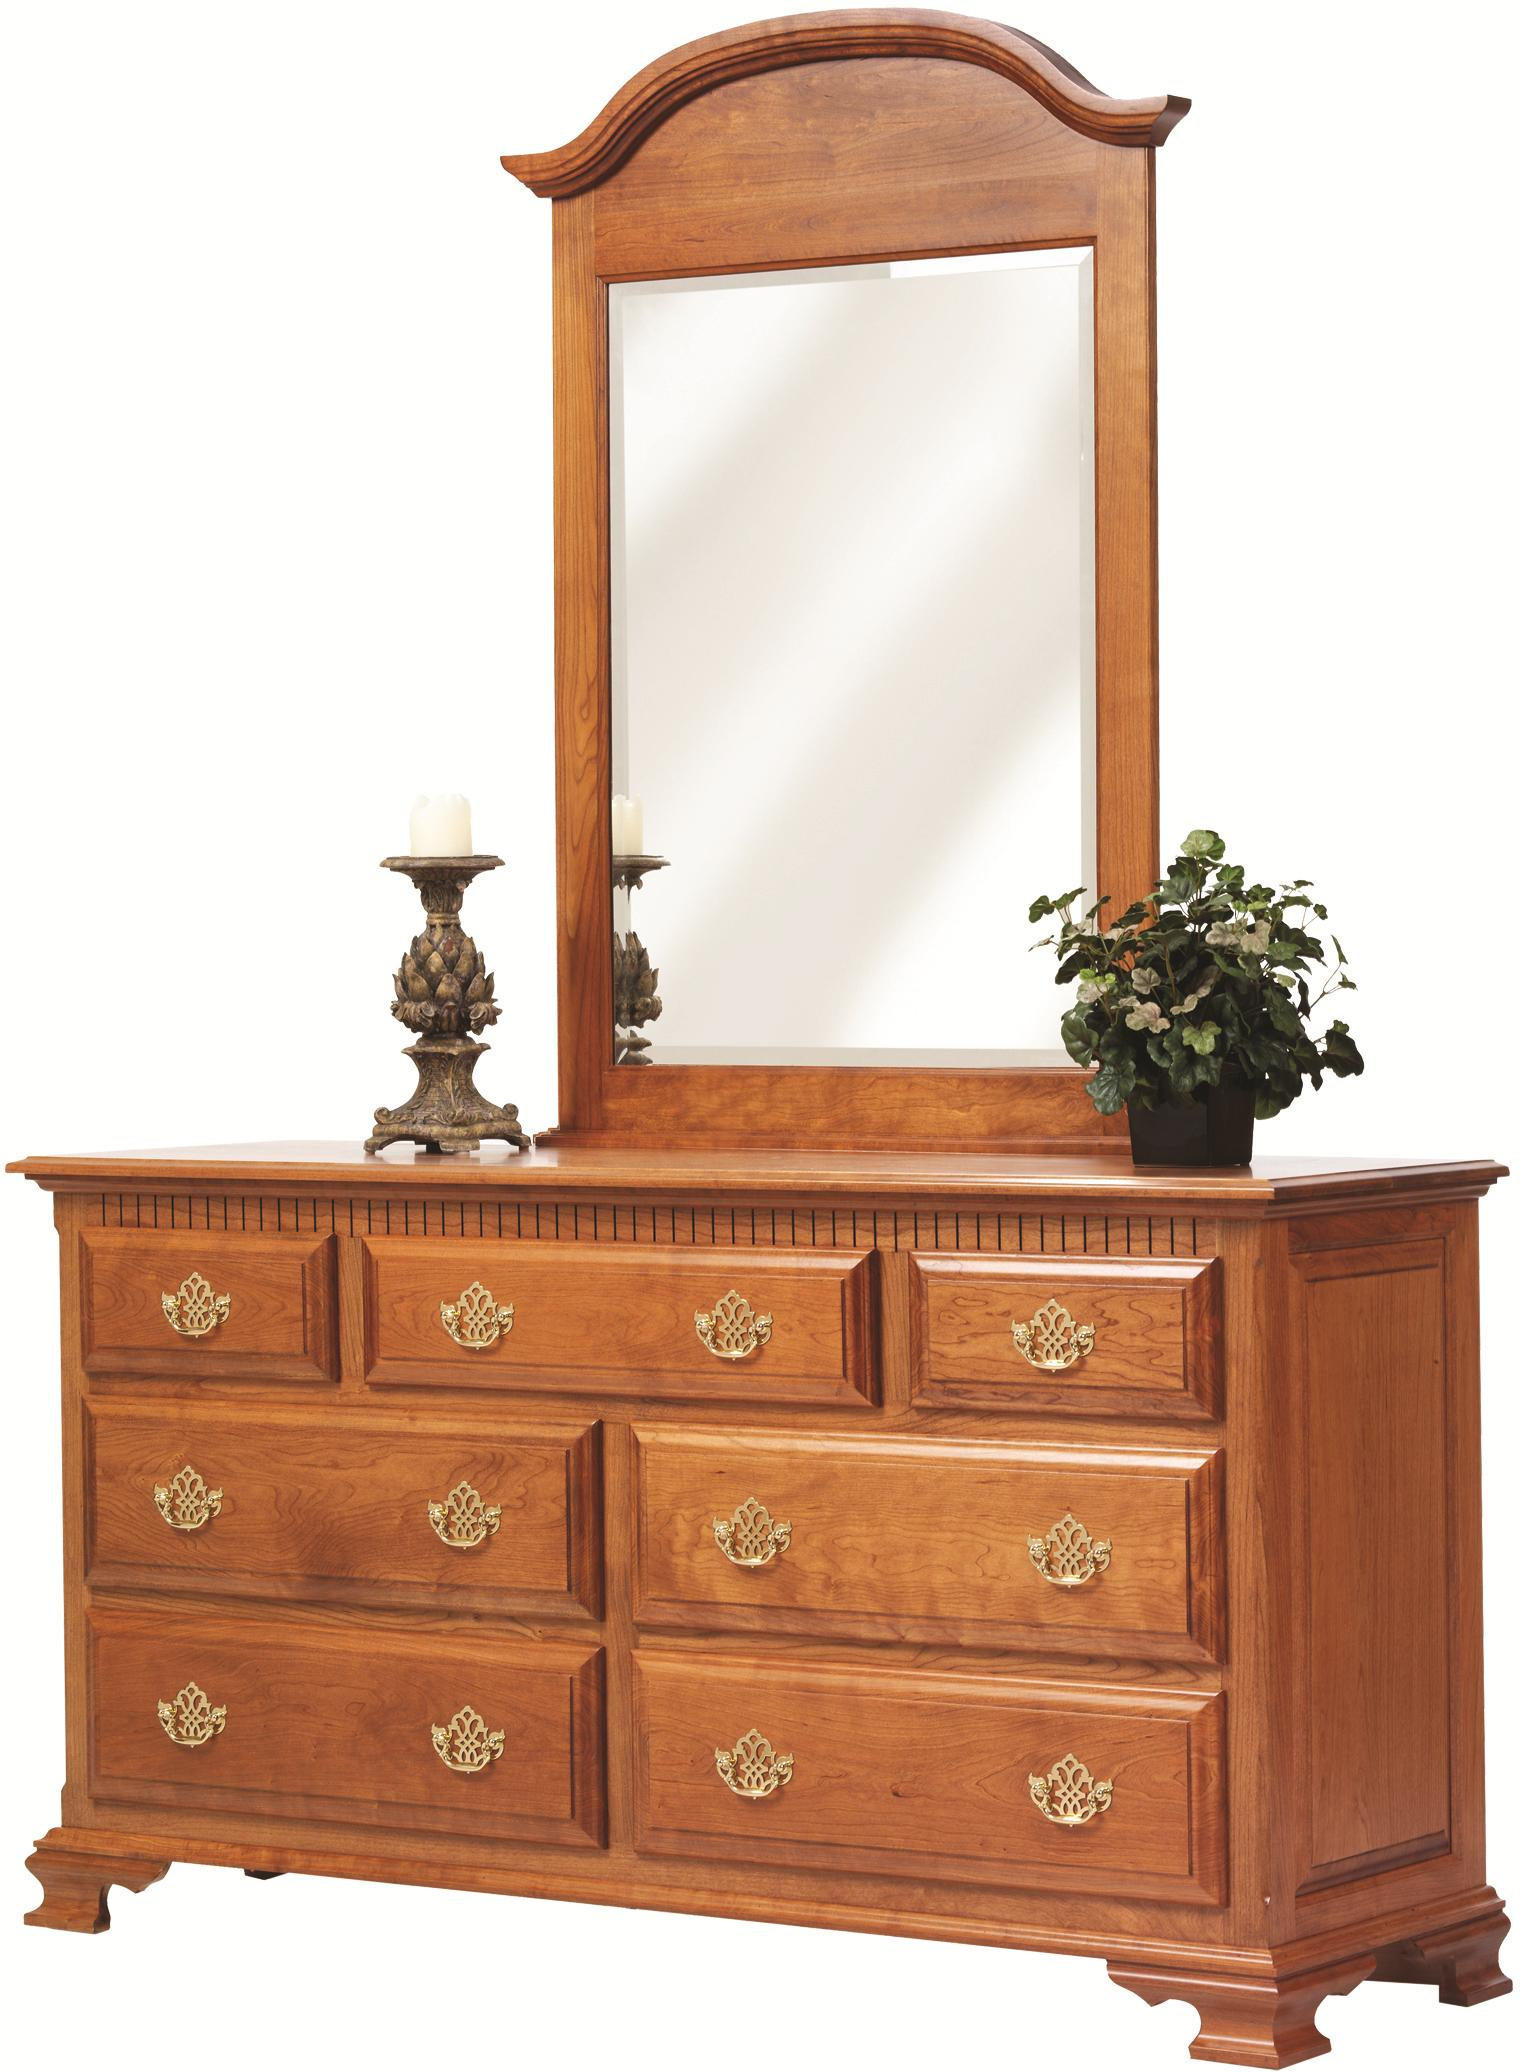 Victorias Tradition Dresser and Mirror Set by Millcraft at Saugerties Furniture Mart